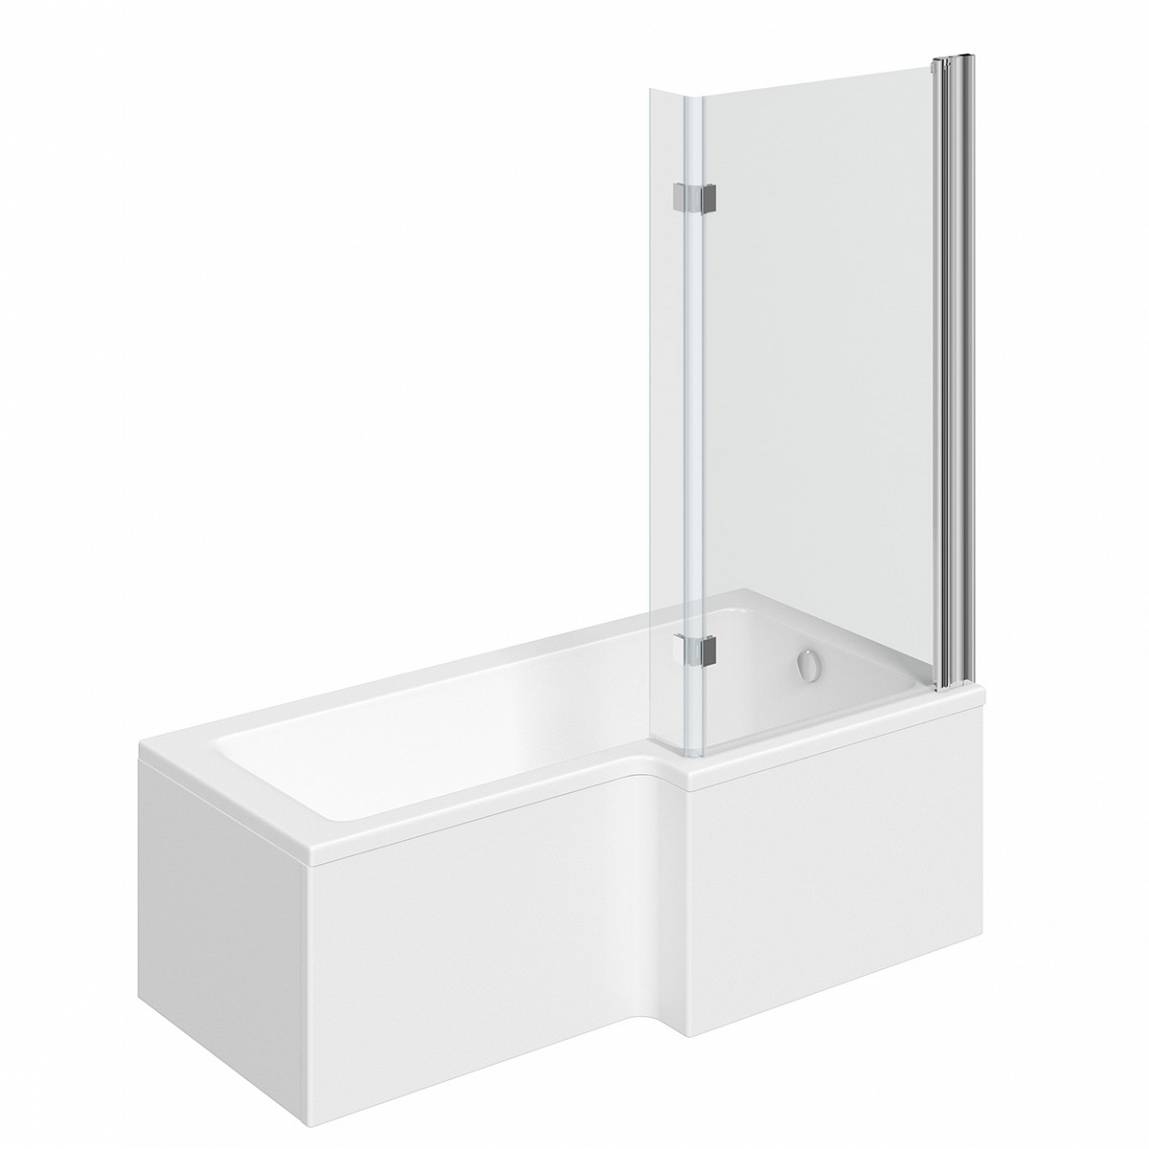 Image of Boston Shower Bath 1500 x 850 RH with 8mm Hinged Screen